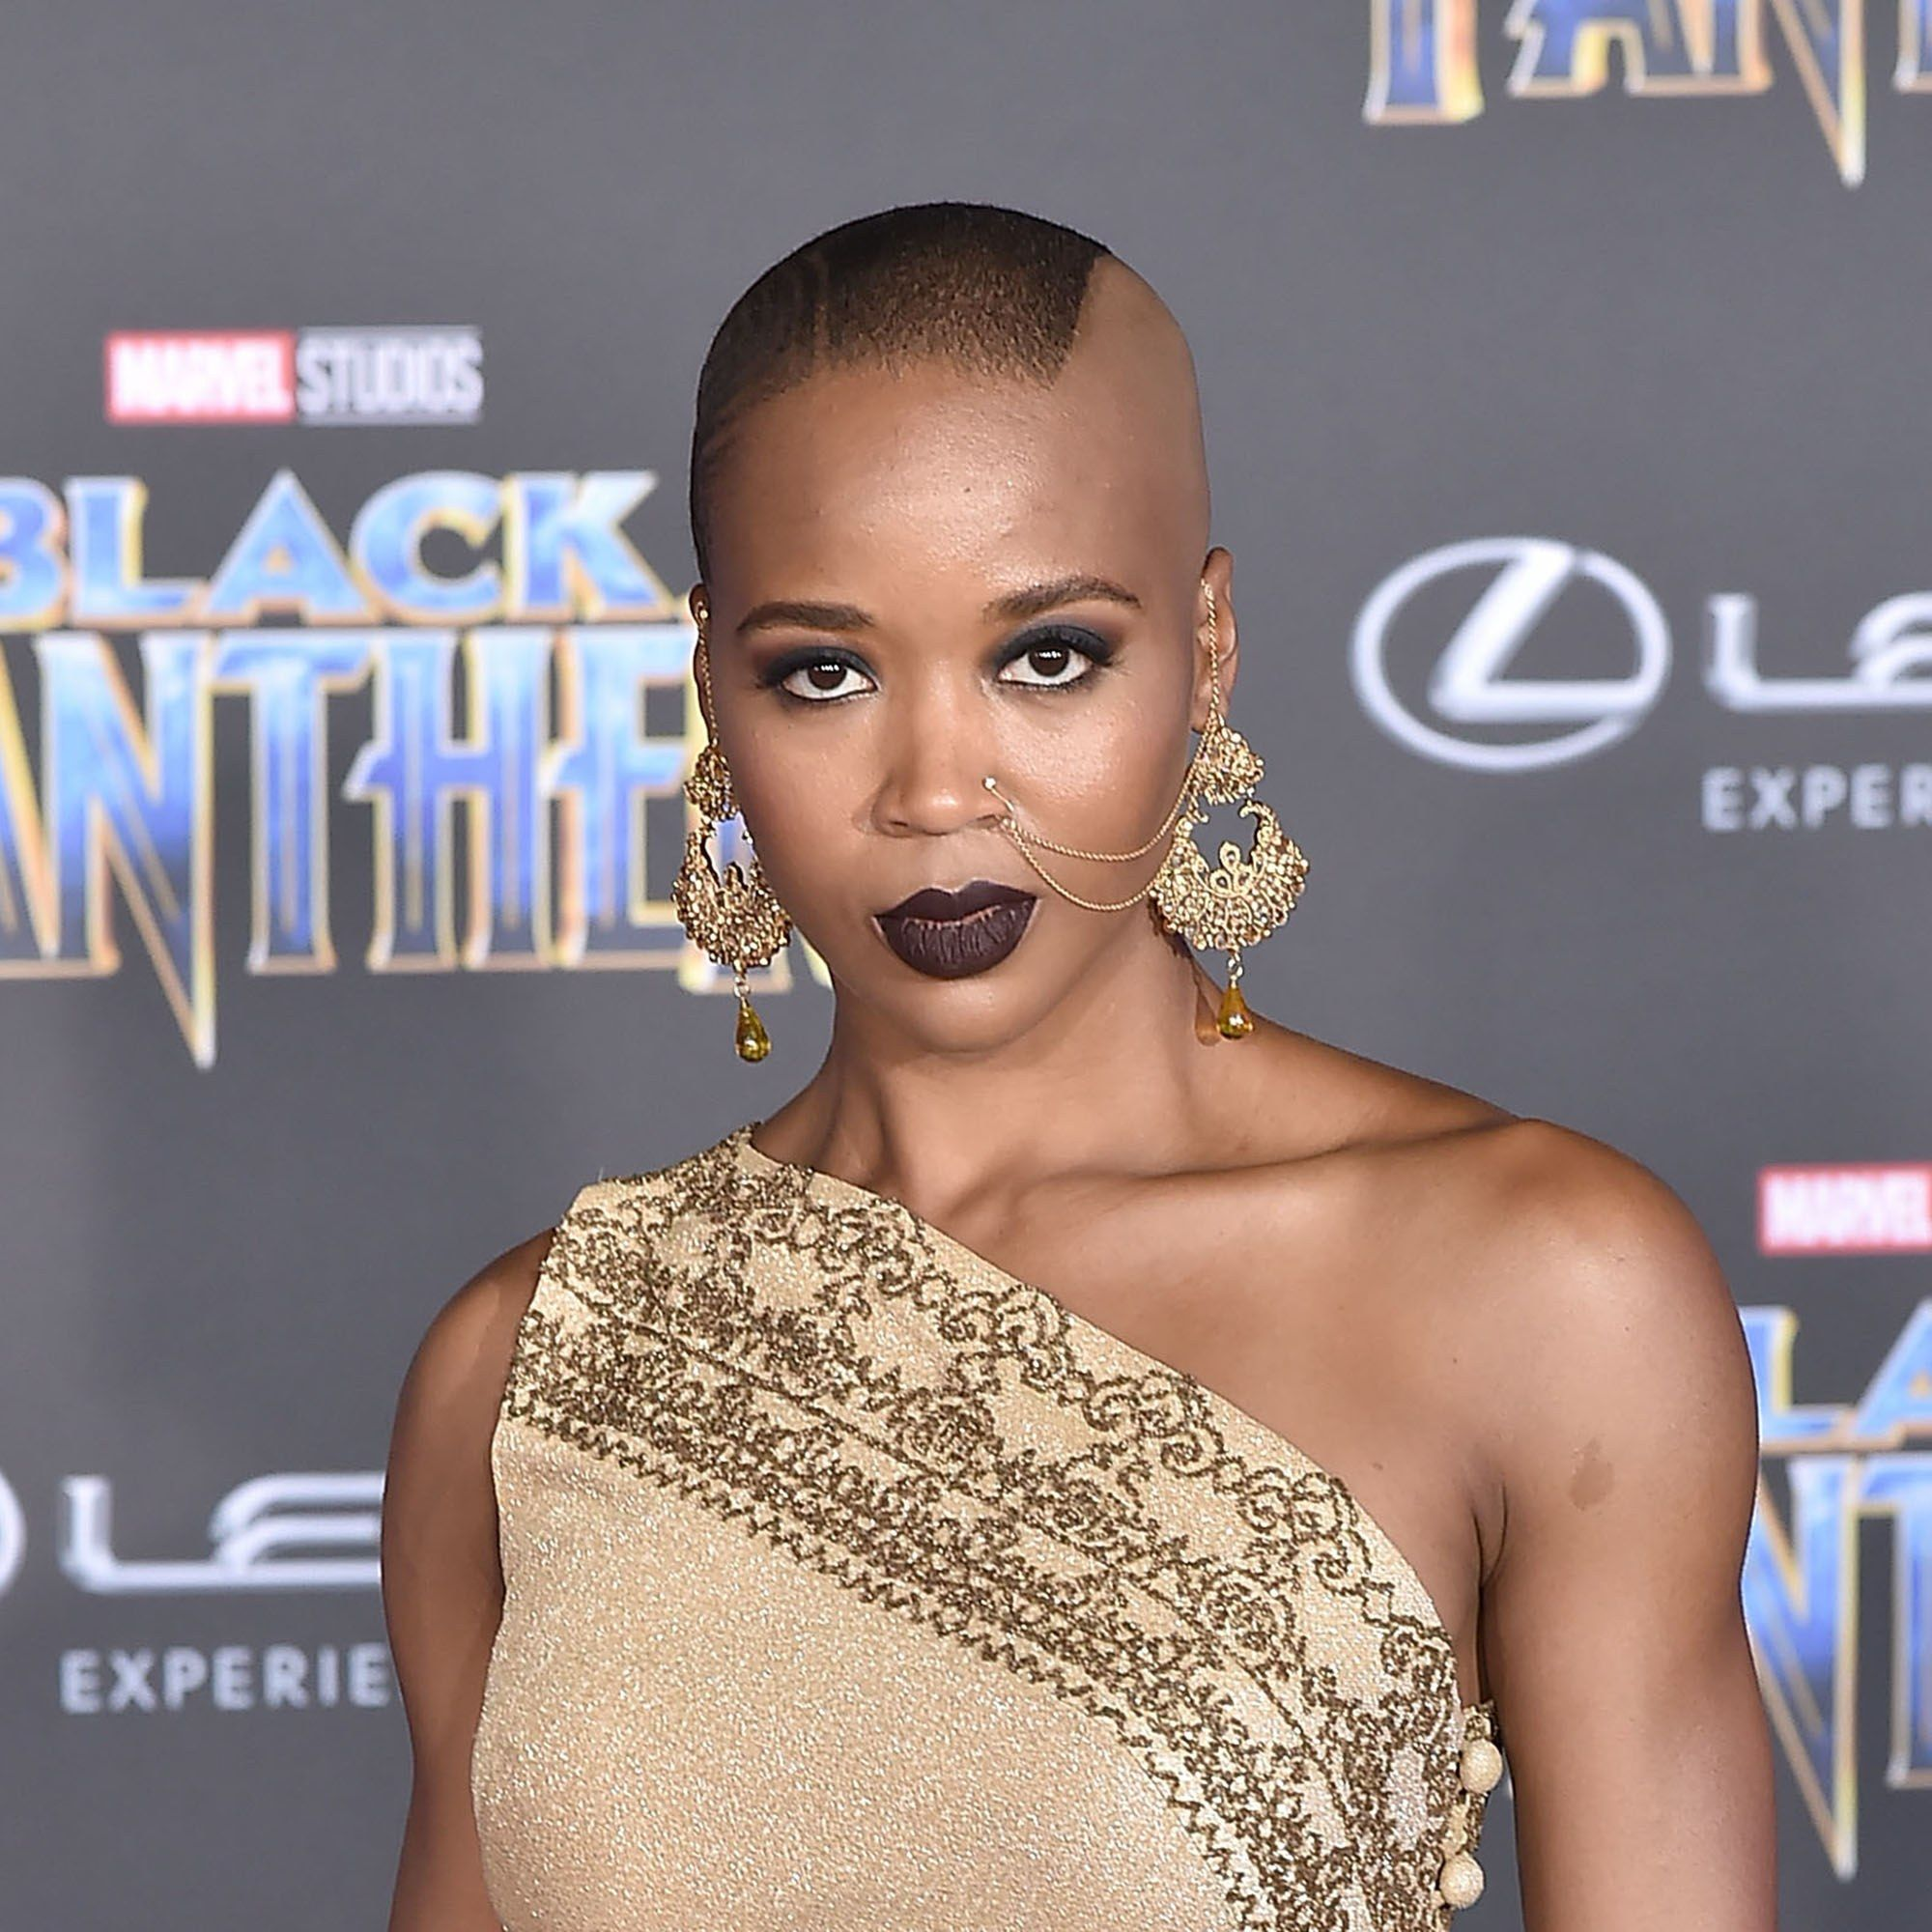 """The """"Black Panther"""" Premiere Had Some ICONIC Hair and Makeup Looks   Short hair styles, Black ..."""